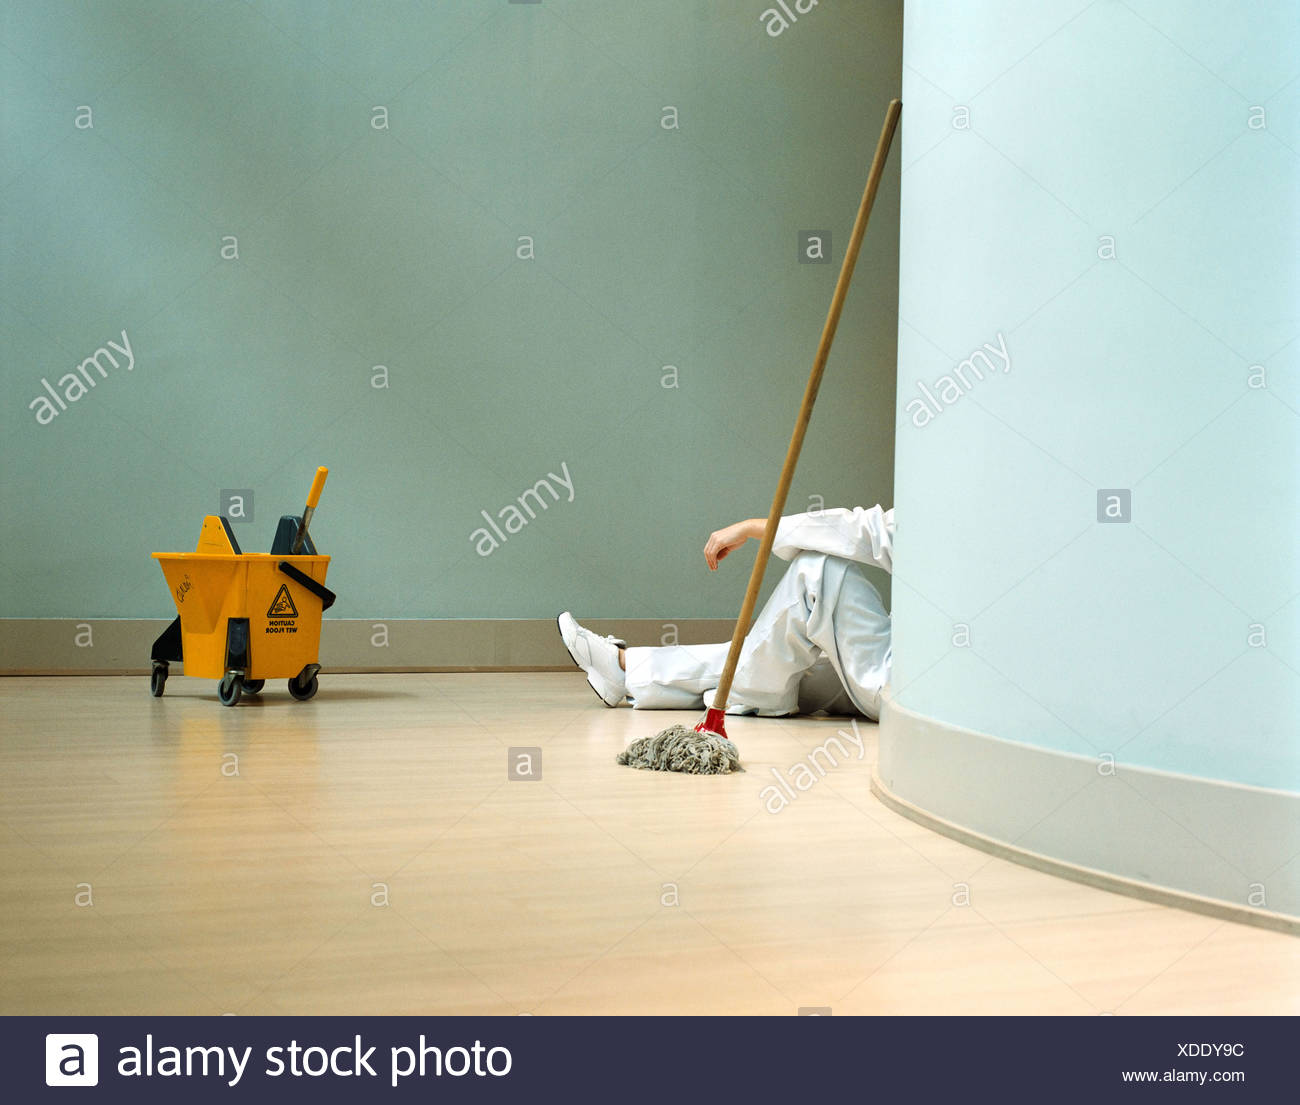 Cleaner relaxing in office Photo Stock